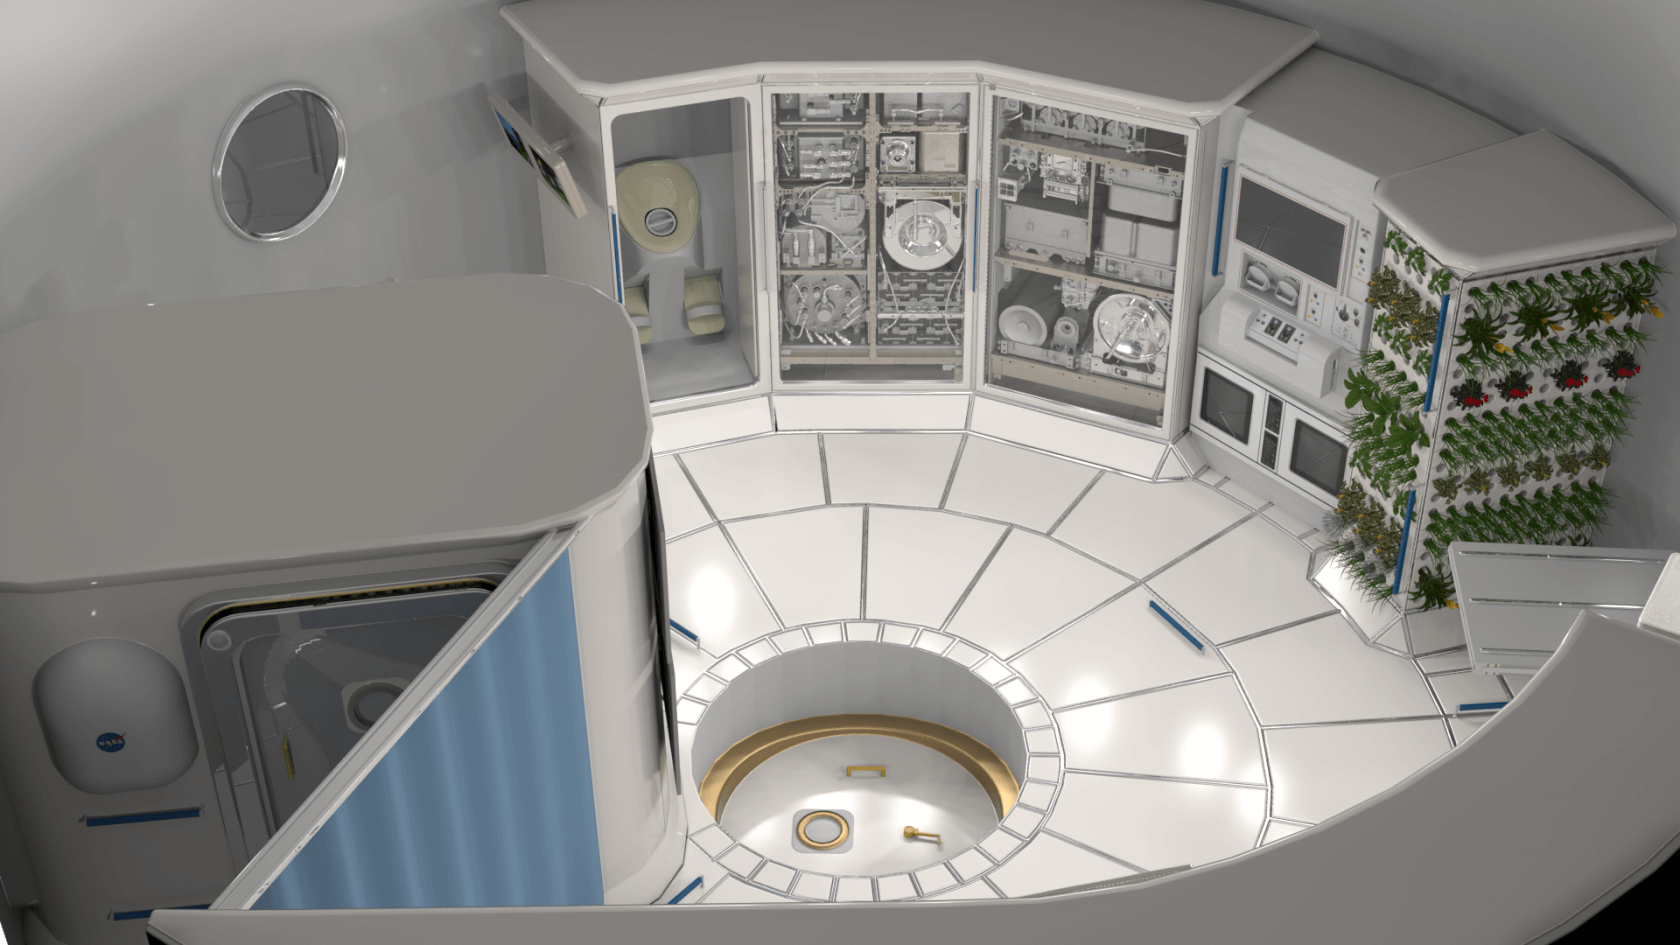 NASA is awarding $30 million to two research institutes to develop automated space habitats